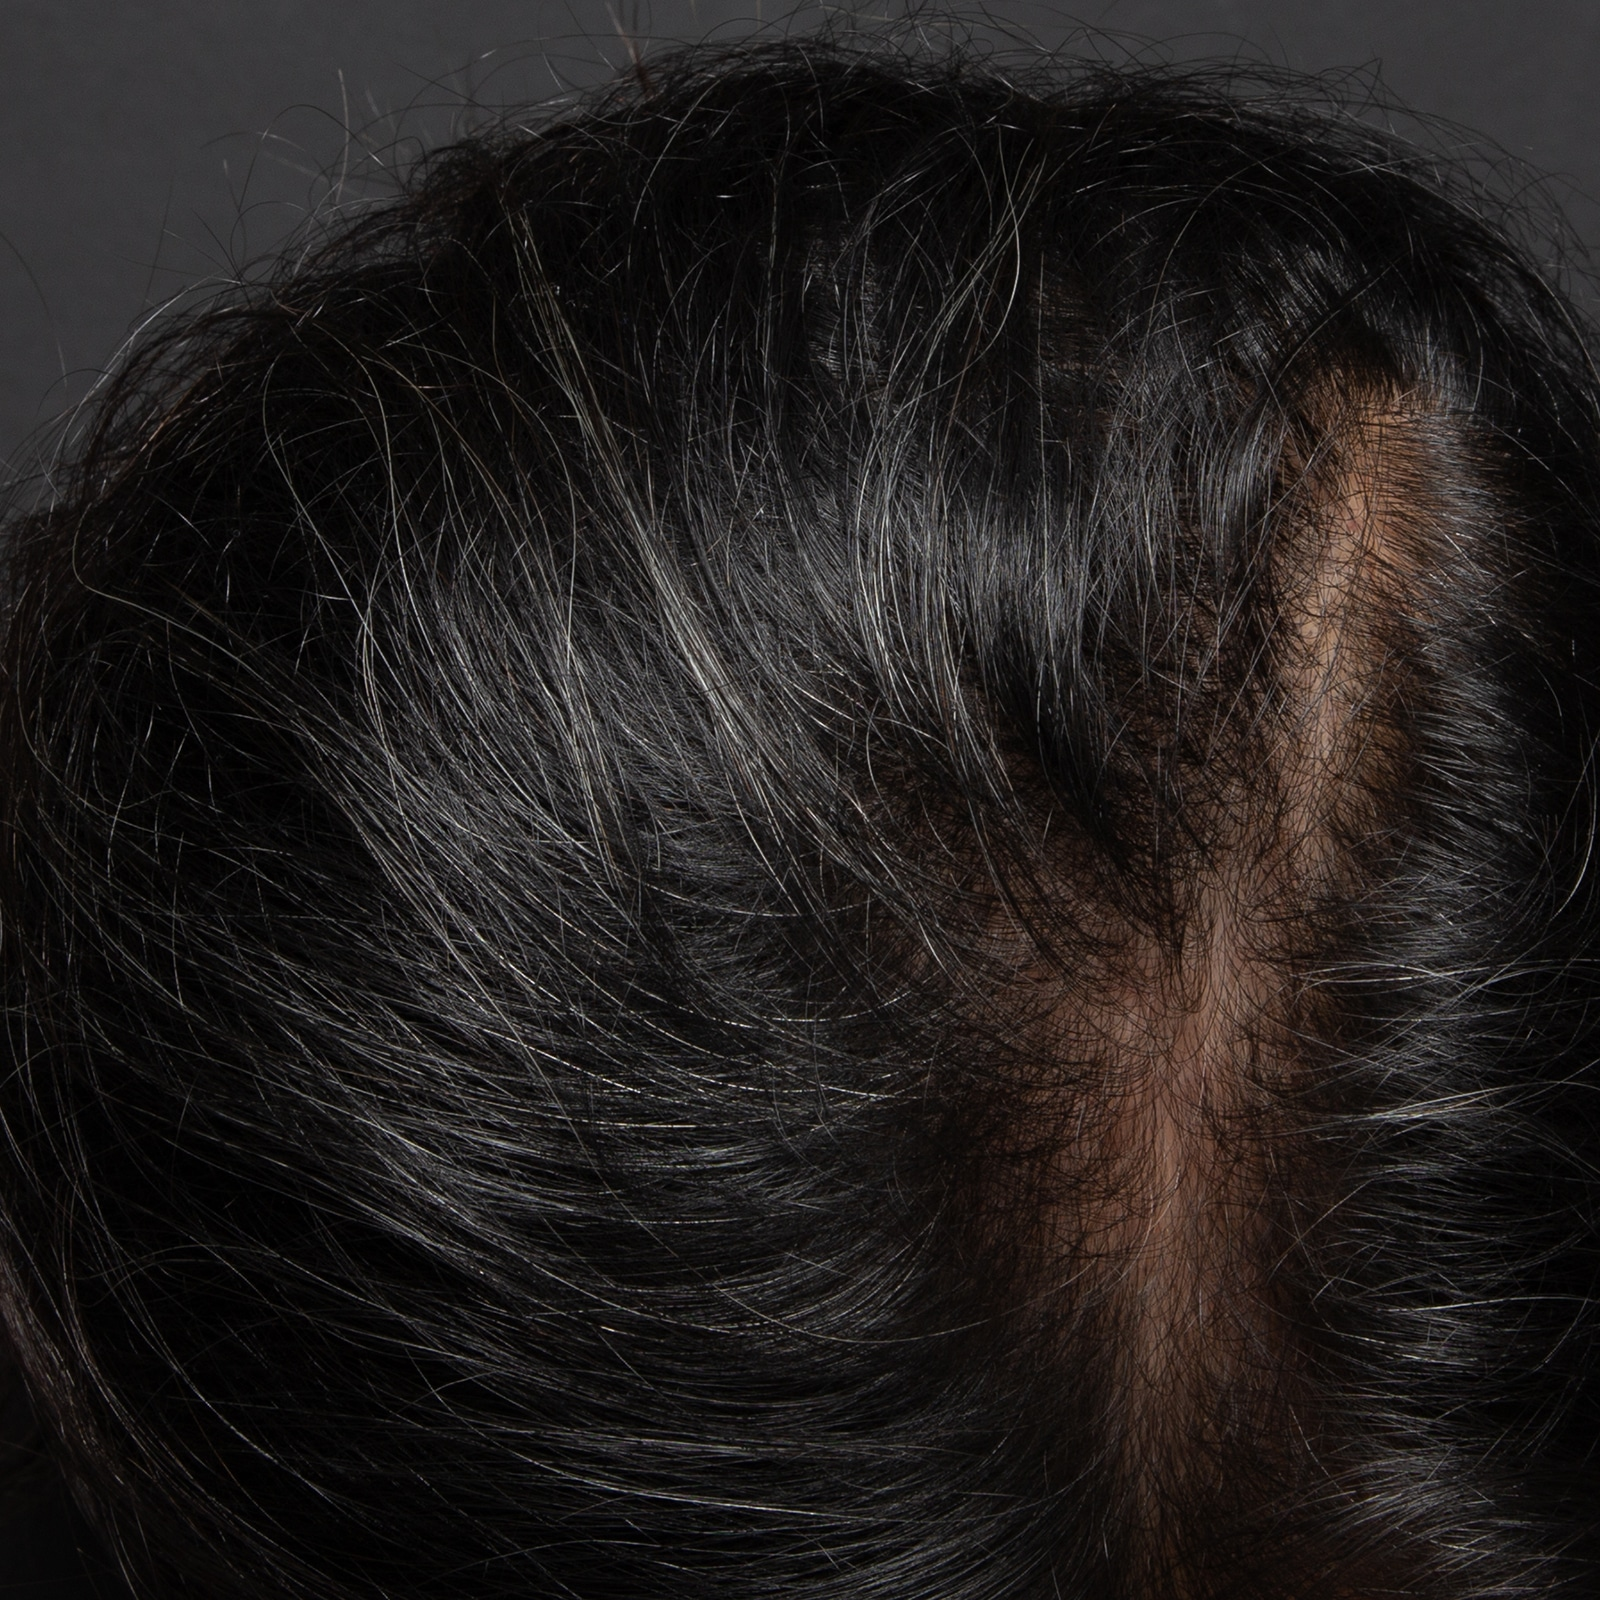 PRP For Hair Loss, Regrow Your Own Hair With Platelet Rich Plasma